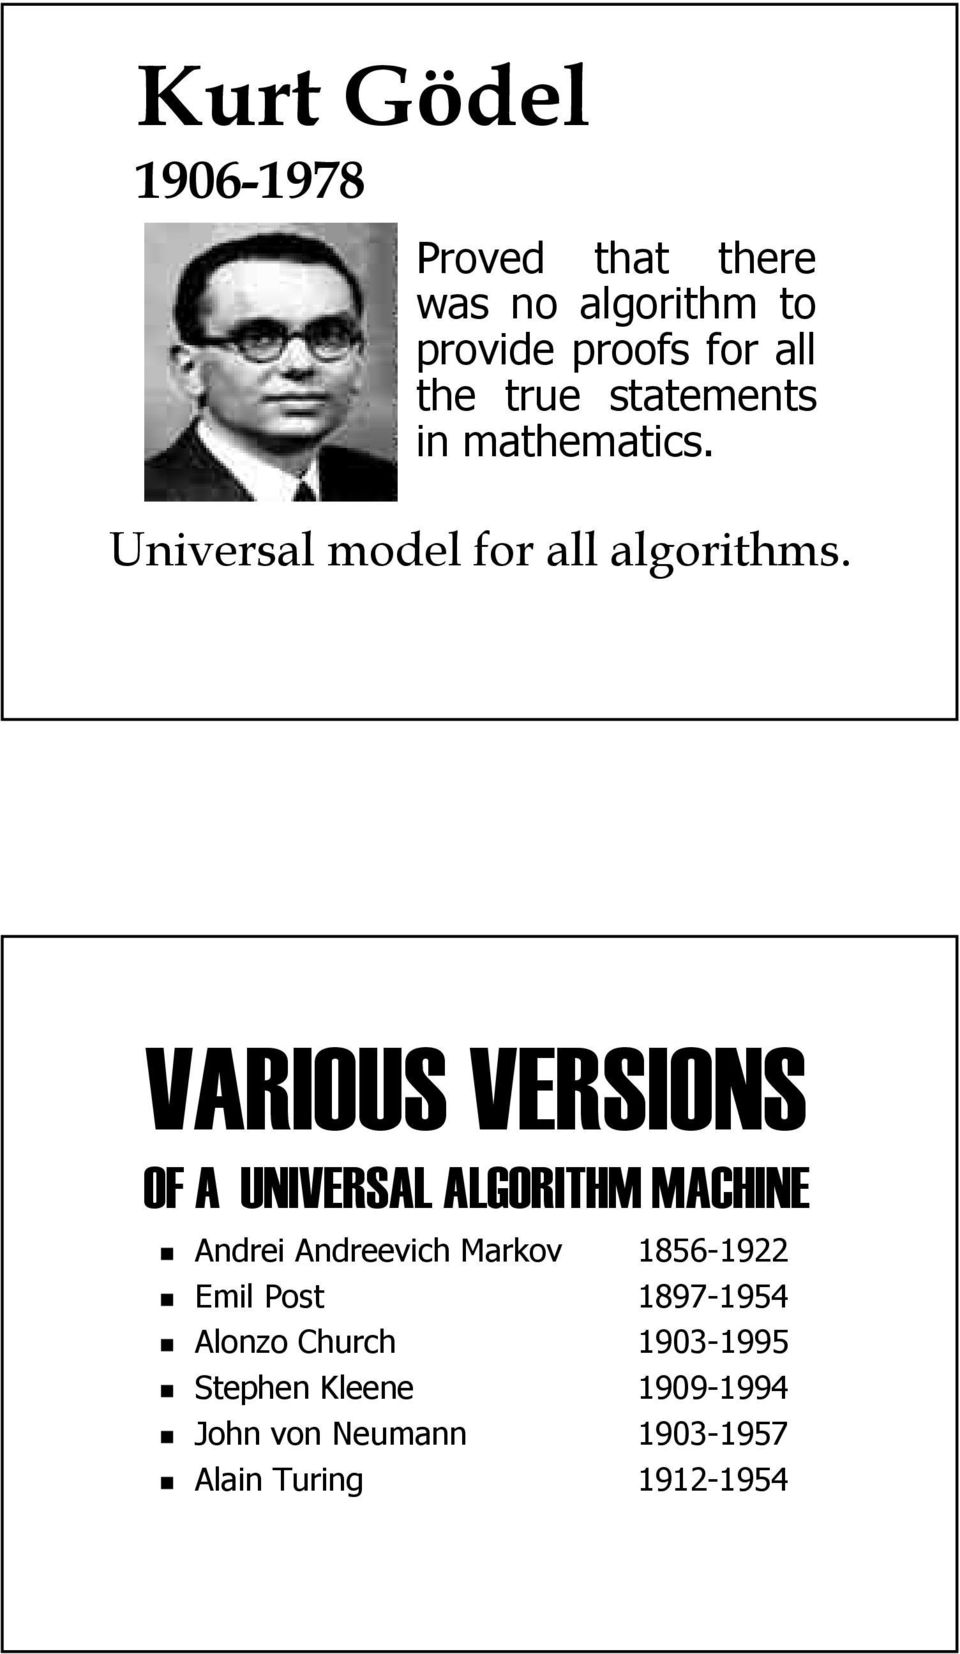 VARIOUS VERSIONS OF A UNIVERSAL ALGORITHM MACHINE Andrei Andreevich Markov 1856-1922 Emil